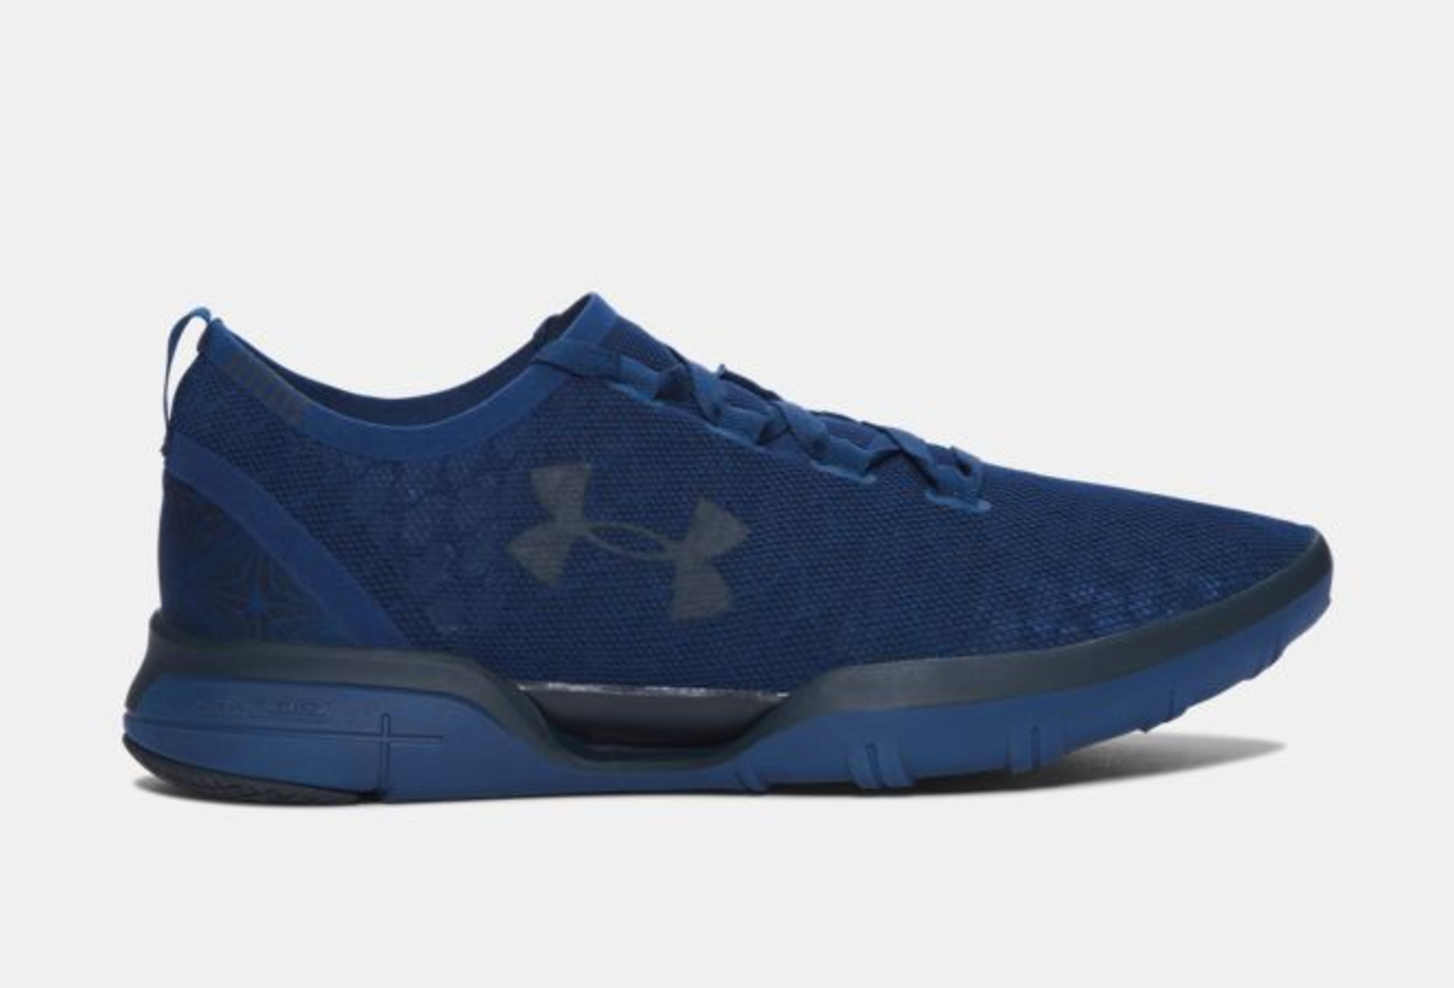 UNDER ARMOUR CHARGED COOLSWITCH RUN BLUE - UNDER ARMOUR MEN'S RUNNING SHOES